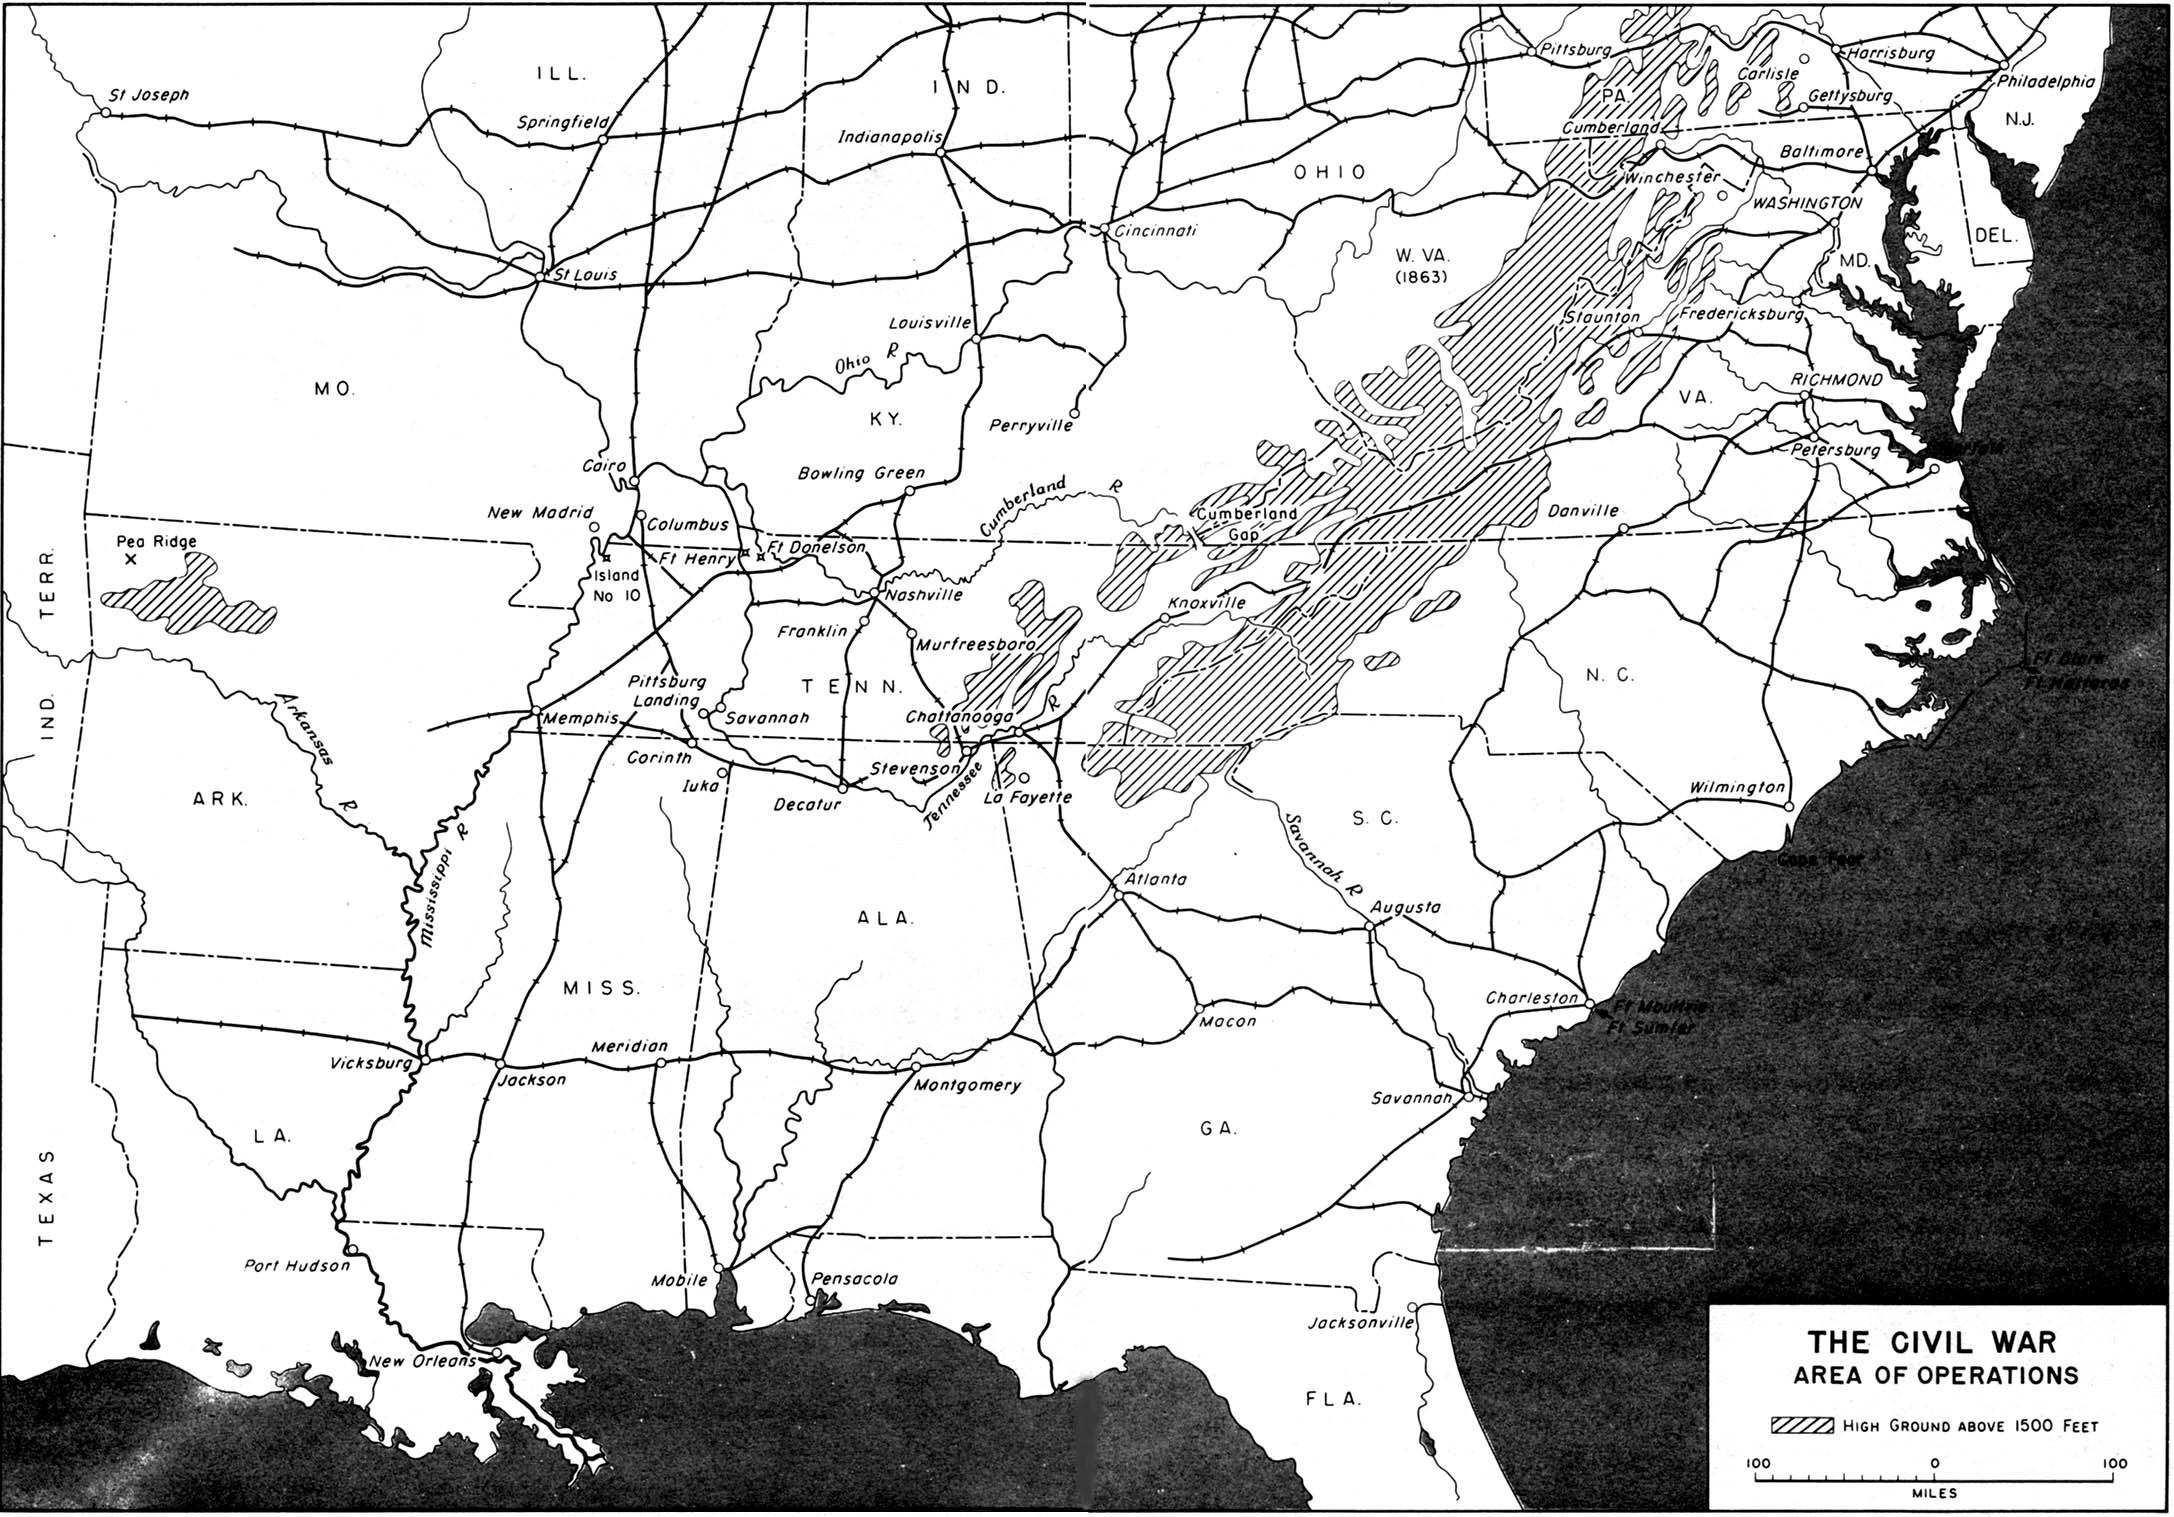 map 21 the civil war area of operations